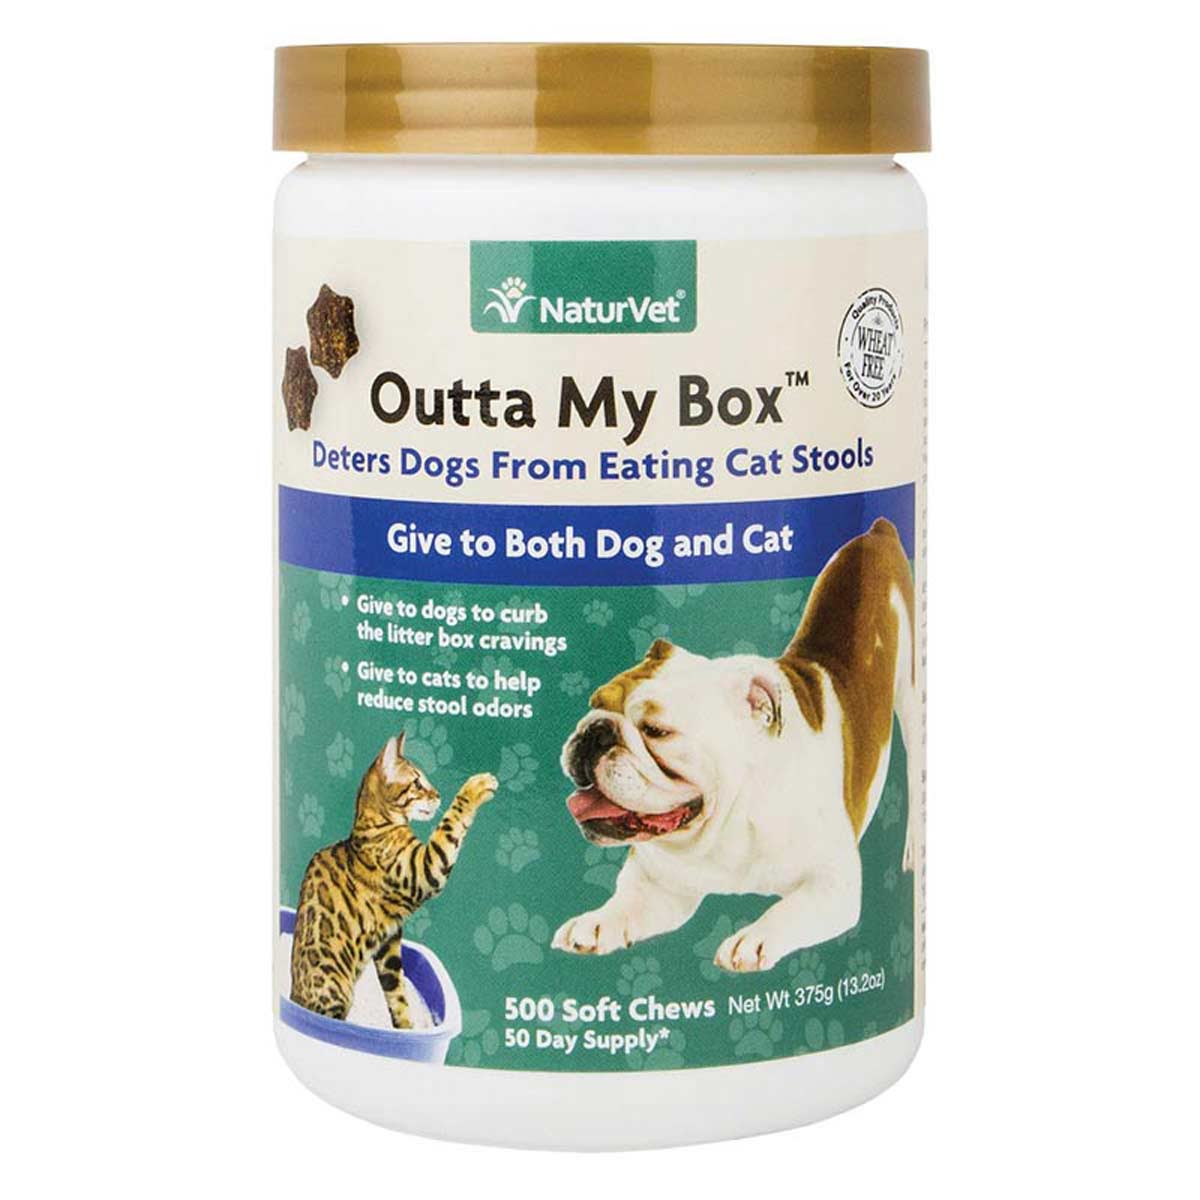 NaturVet Outta My Box Soft Chews for Dogs and Cats - Jar 500 count